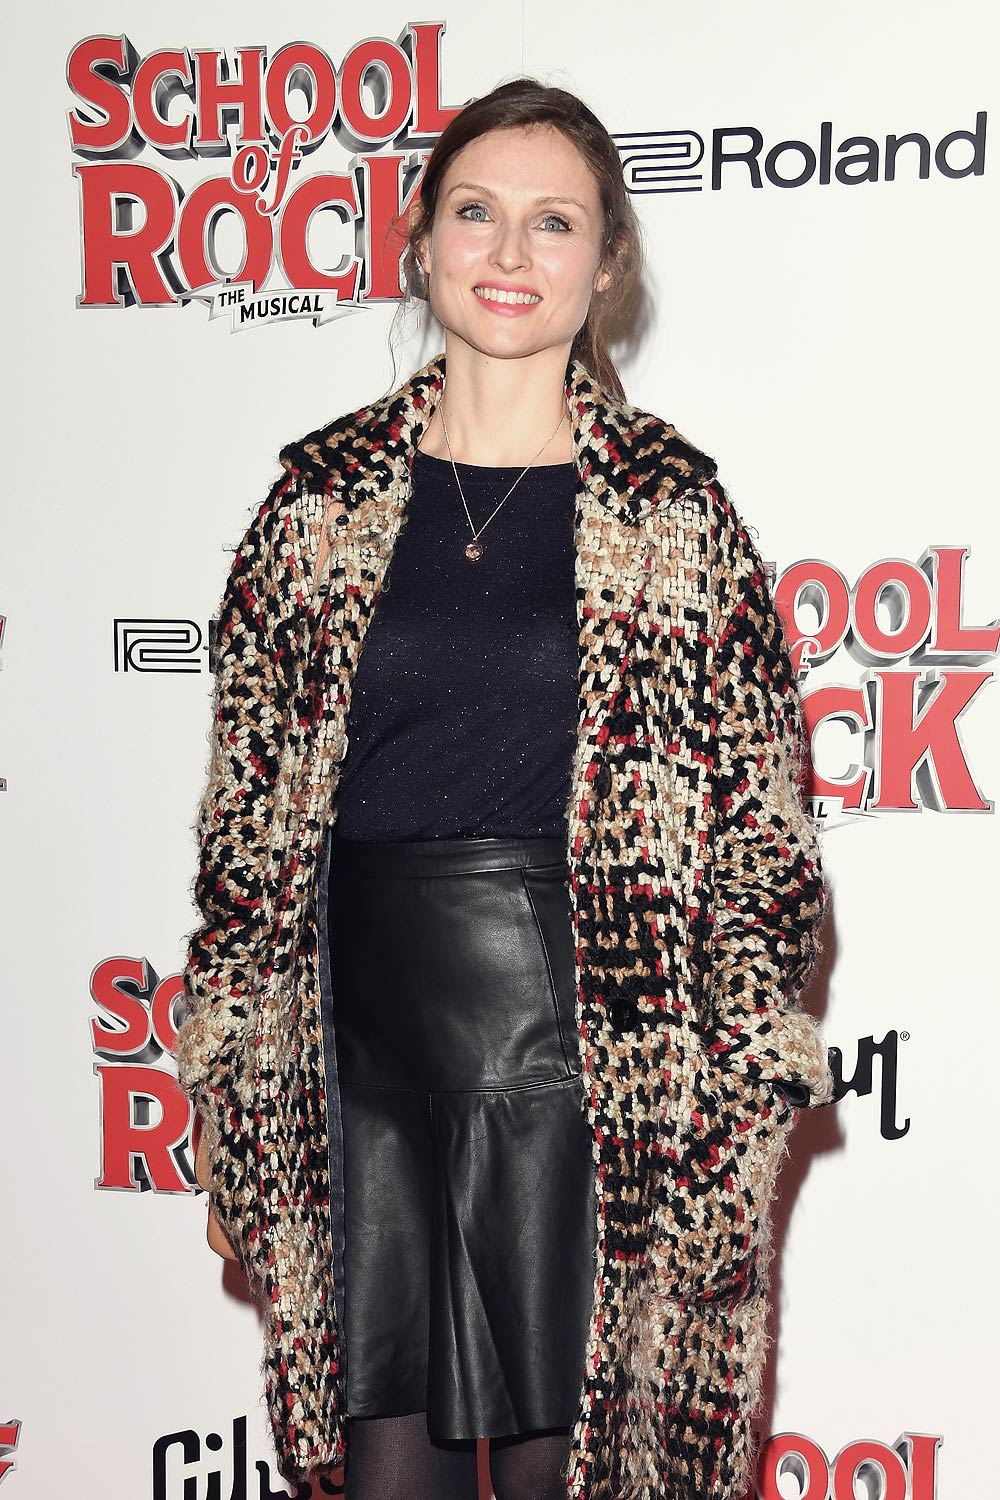 Sophie Ellis-Bextor attends the opening night of 'School Of Rock The Musical'